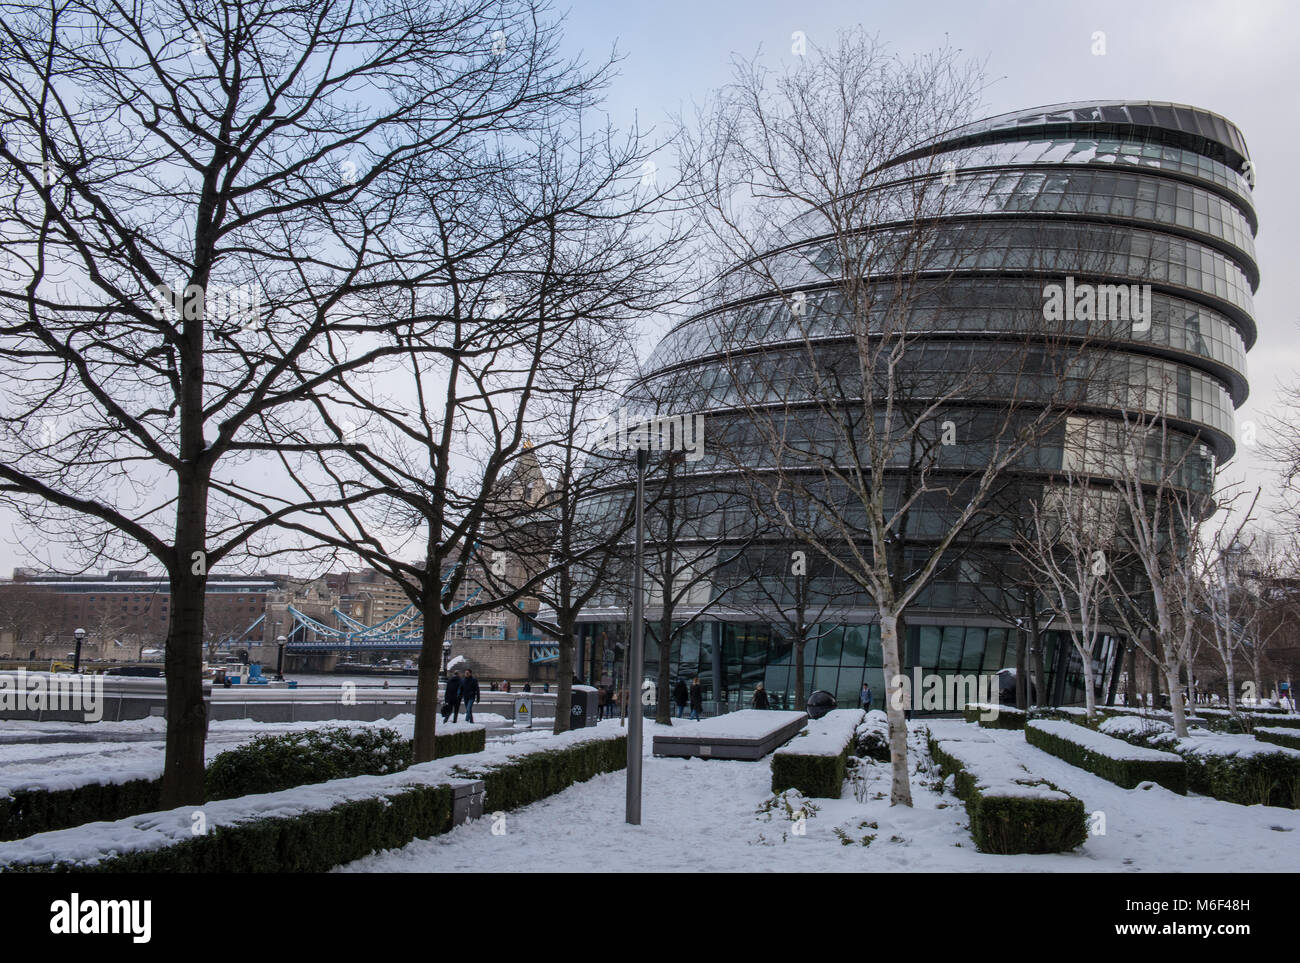 city hall the home of greater london council or GLC in the snow at more london place on the banks of the river thames - Stock Image